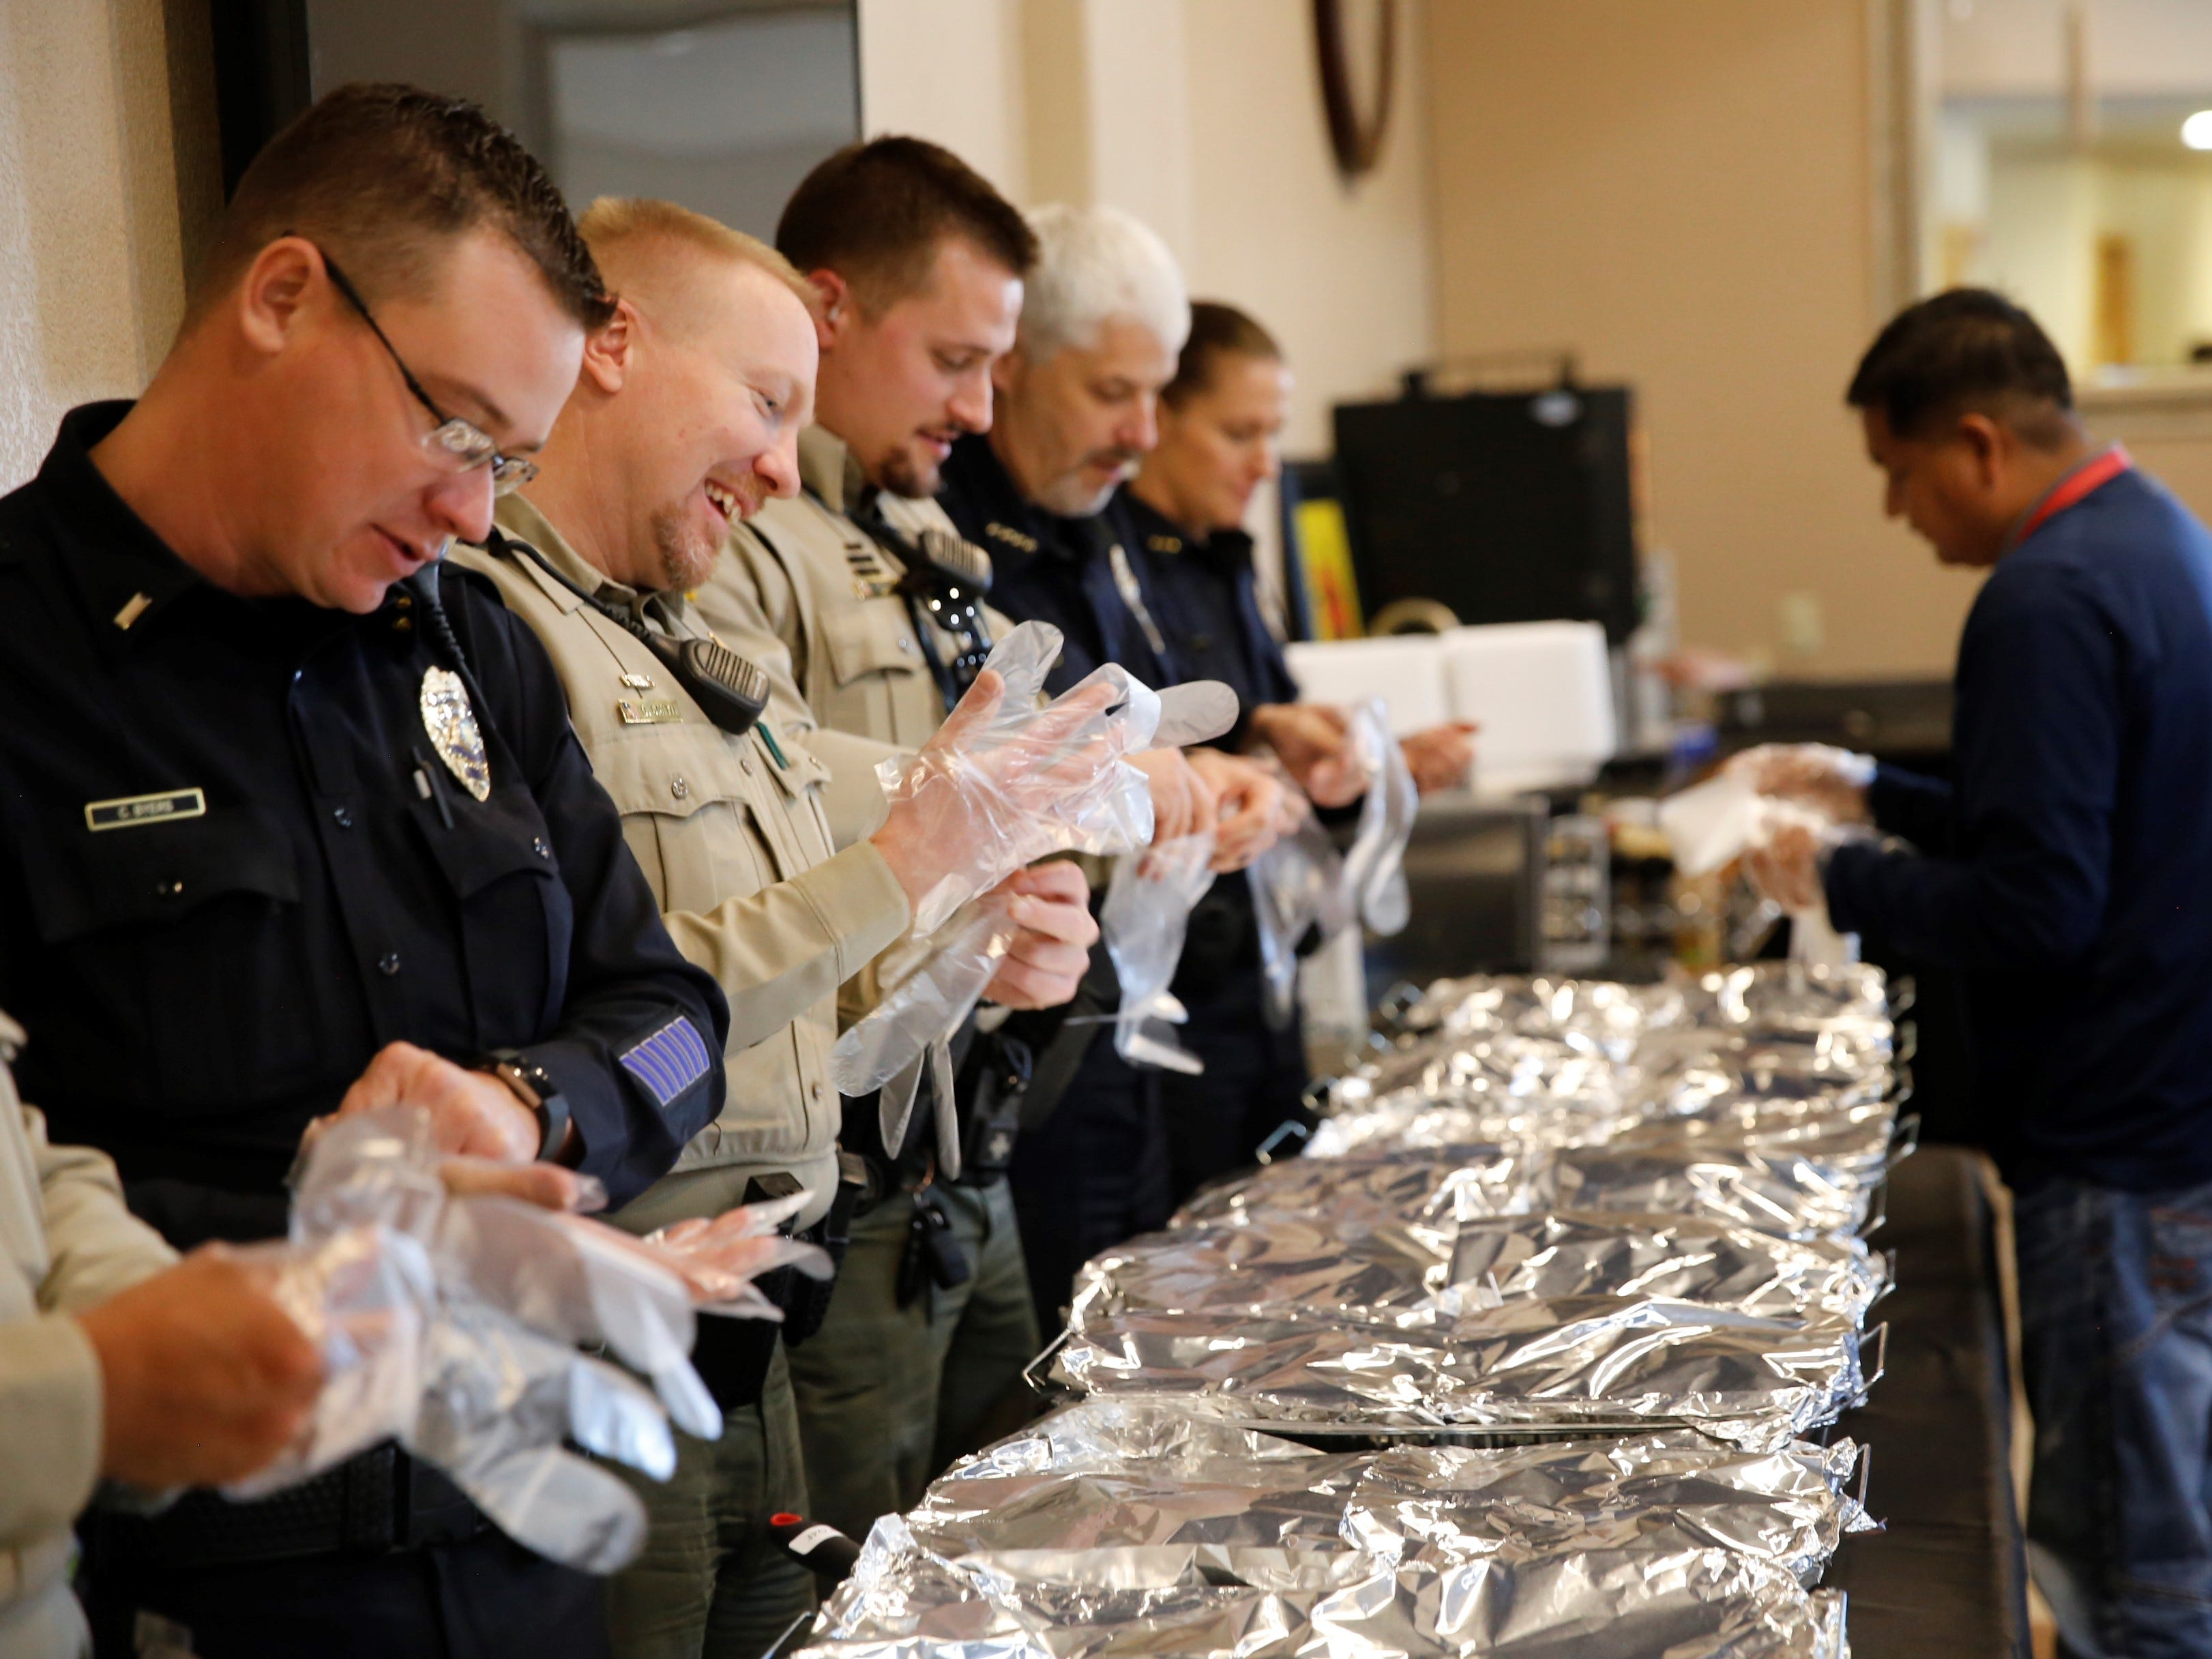 Homer Gleason, right, hands out gloves to members of the Farmington Police Department and the San Juan County Sheriff's Office who helped serve a Thanksgiving meal for the community Tuesday afternoon at the Oasis Church in Farmington. The San Juan County Juvenile Services program, Desert View Family Counseling and Cottonwood Clinical Services hosted the meal.